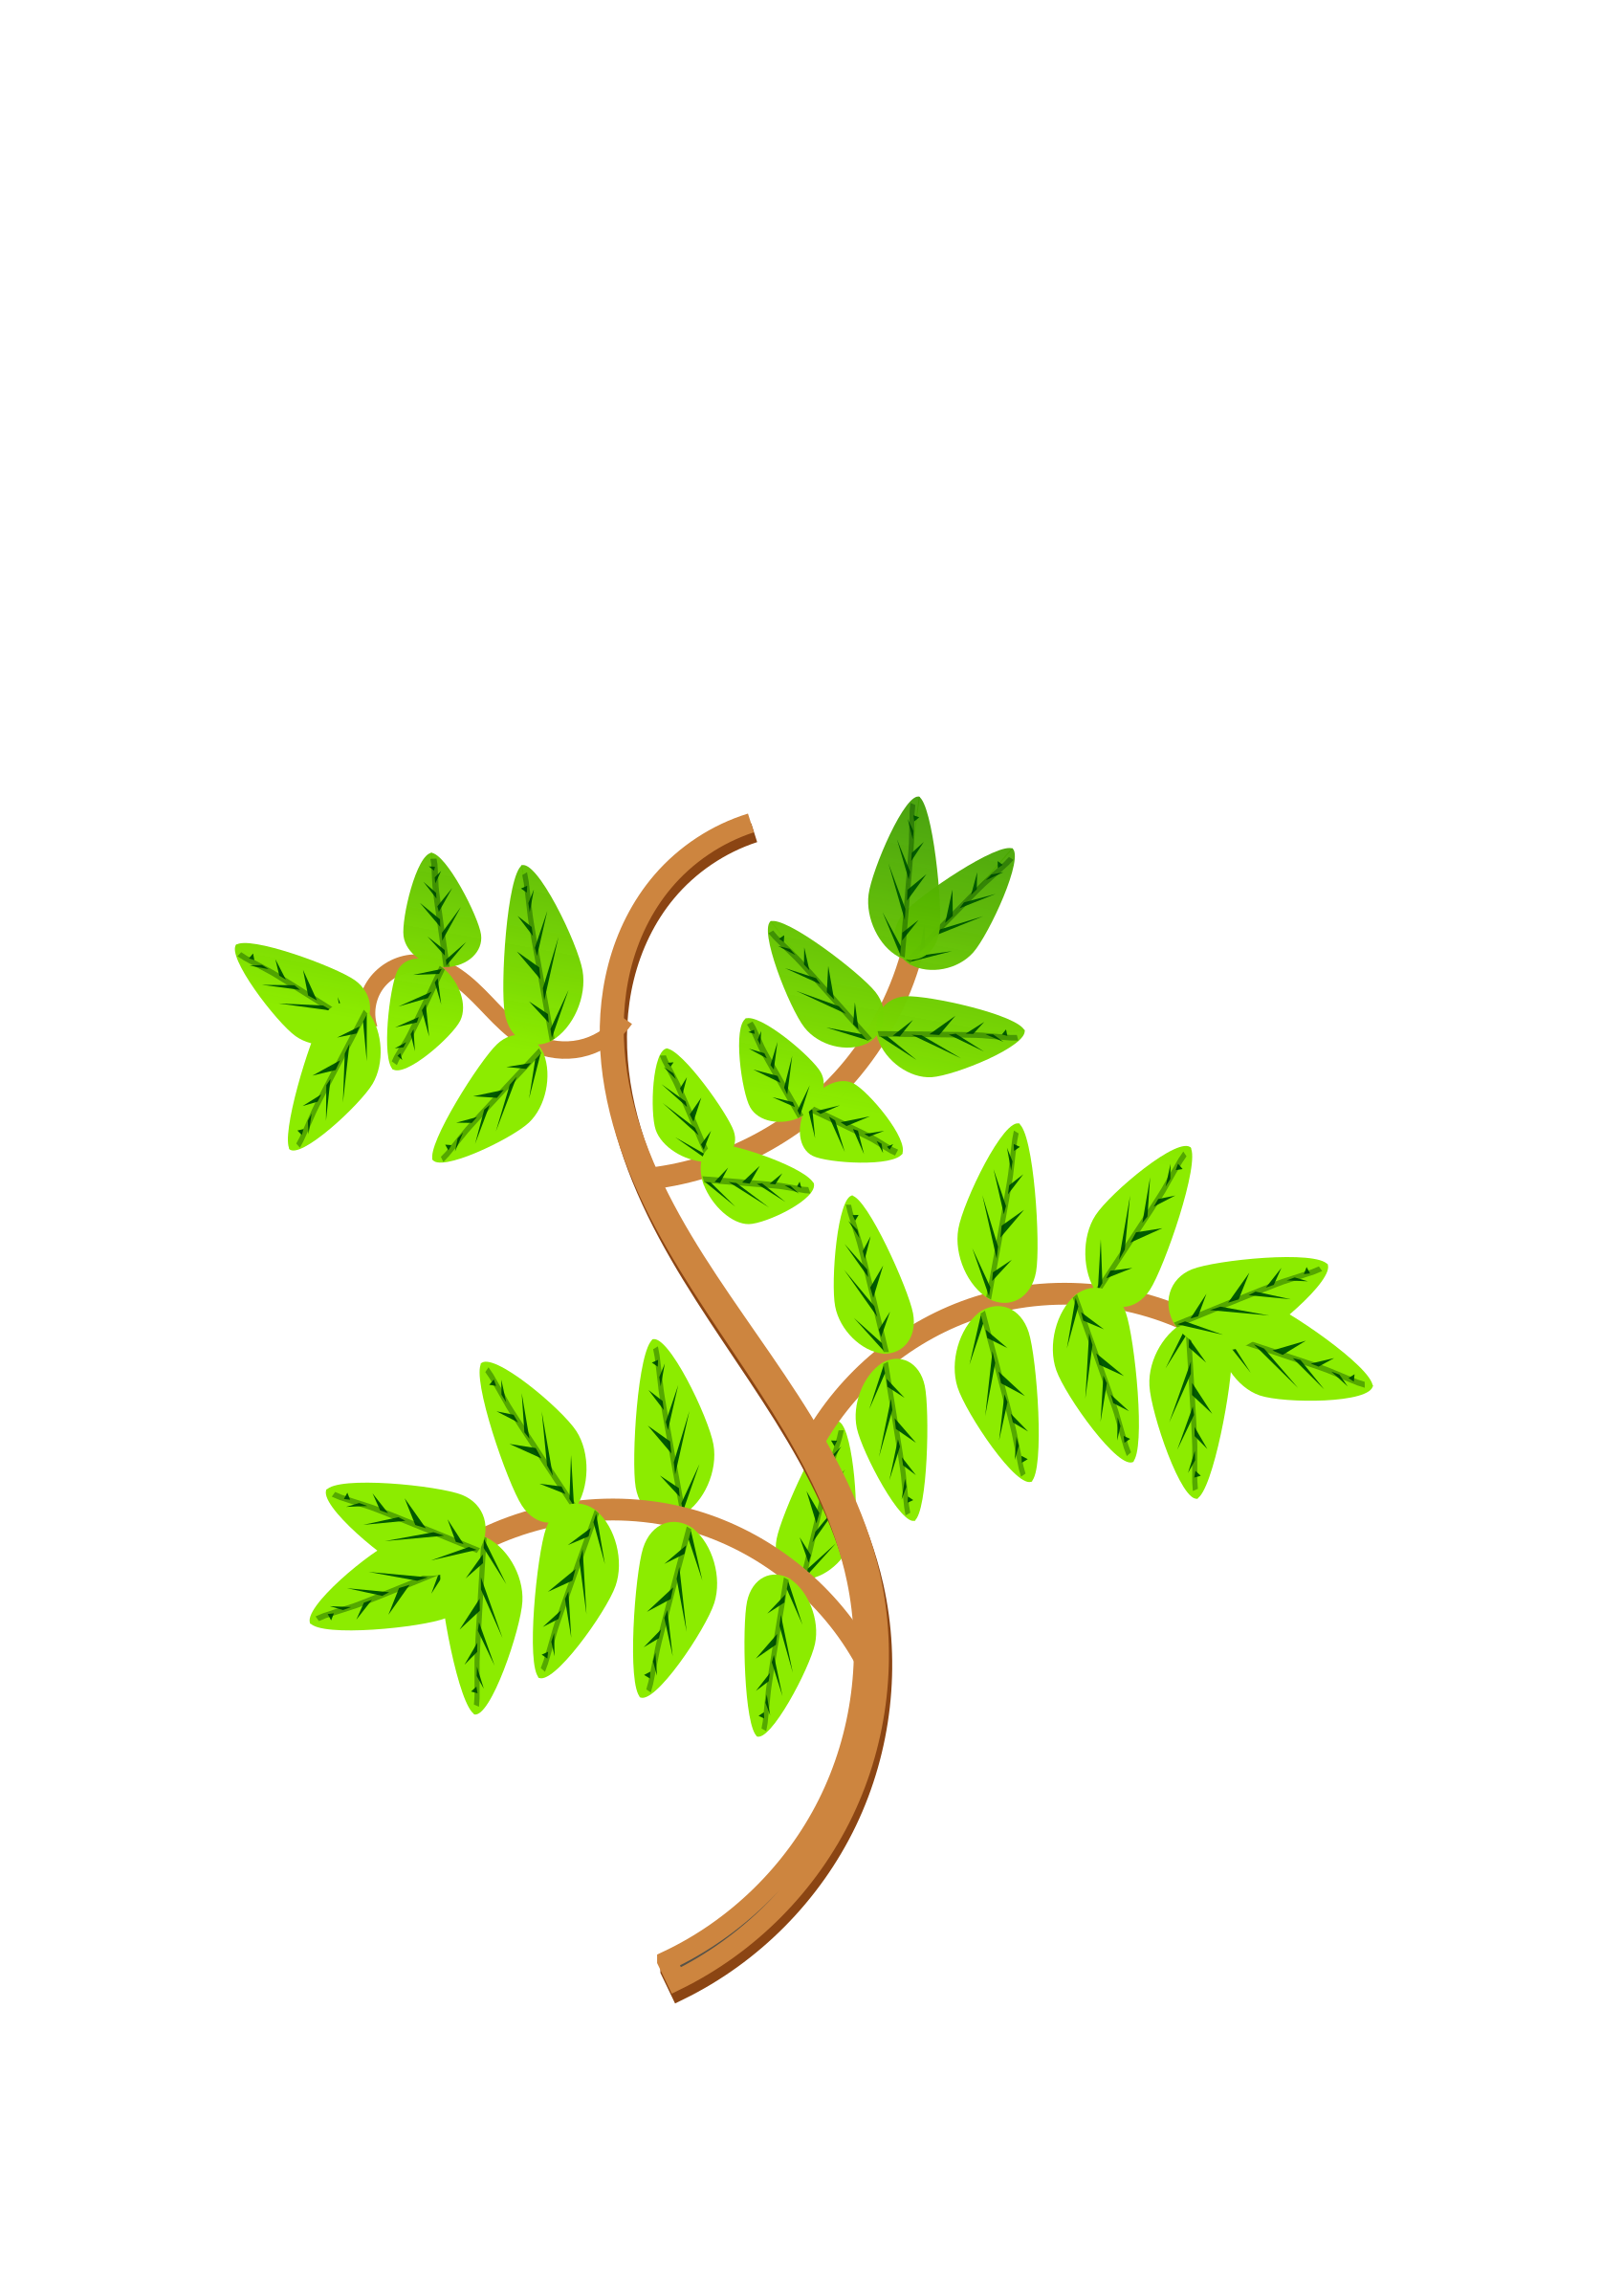 Leaves and branches big. Branch clipart leave clipart